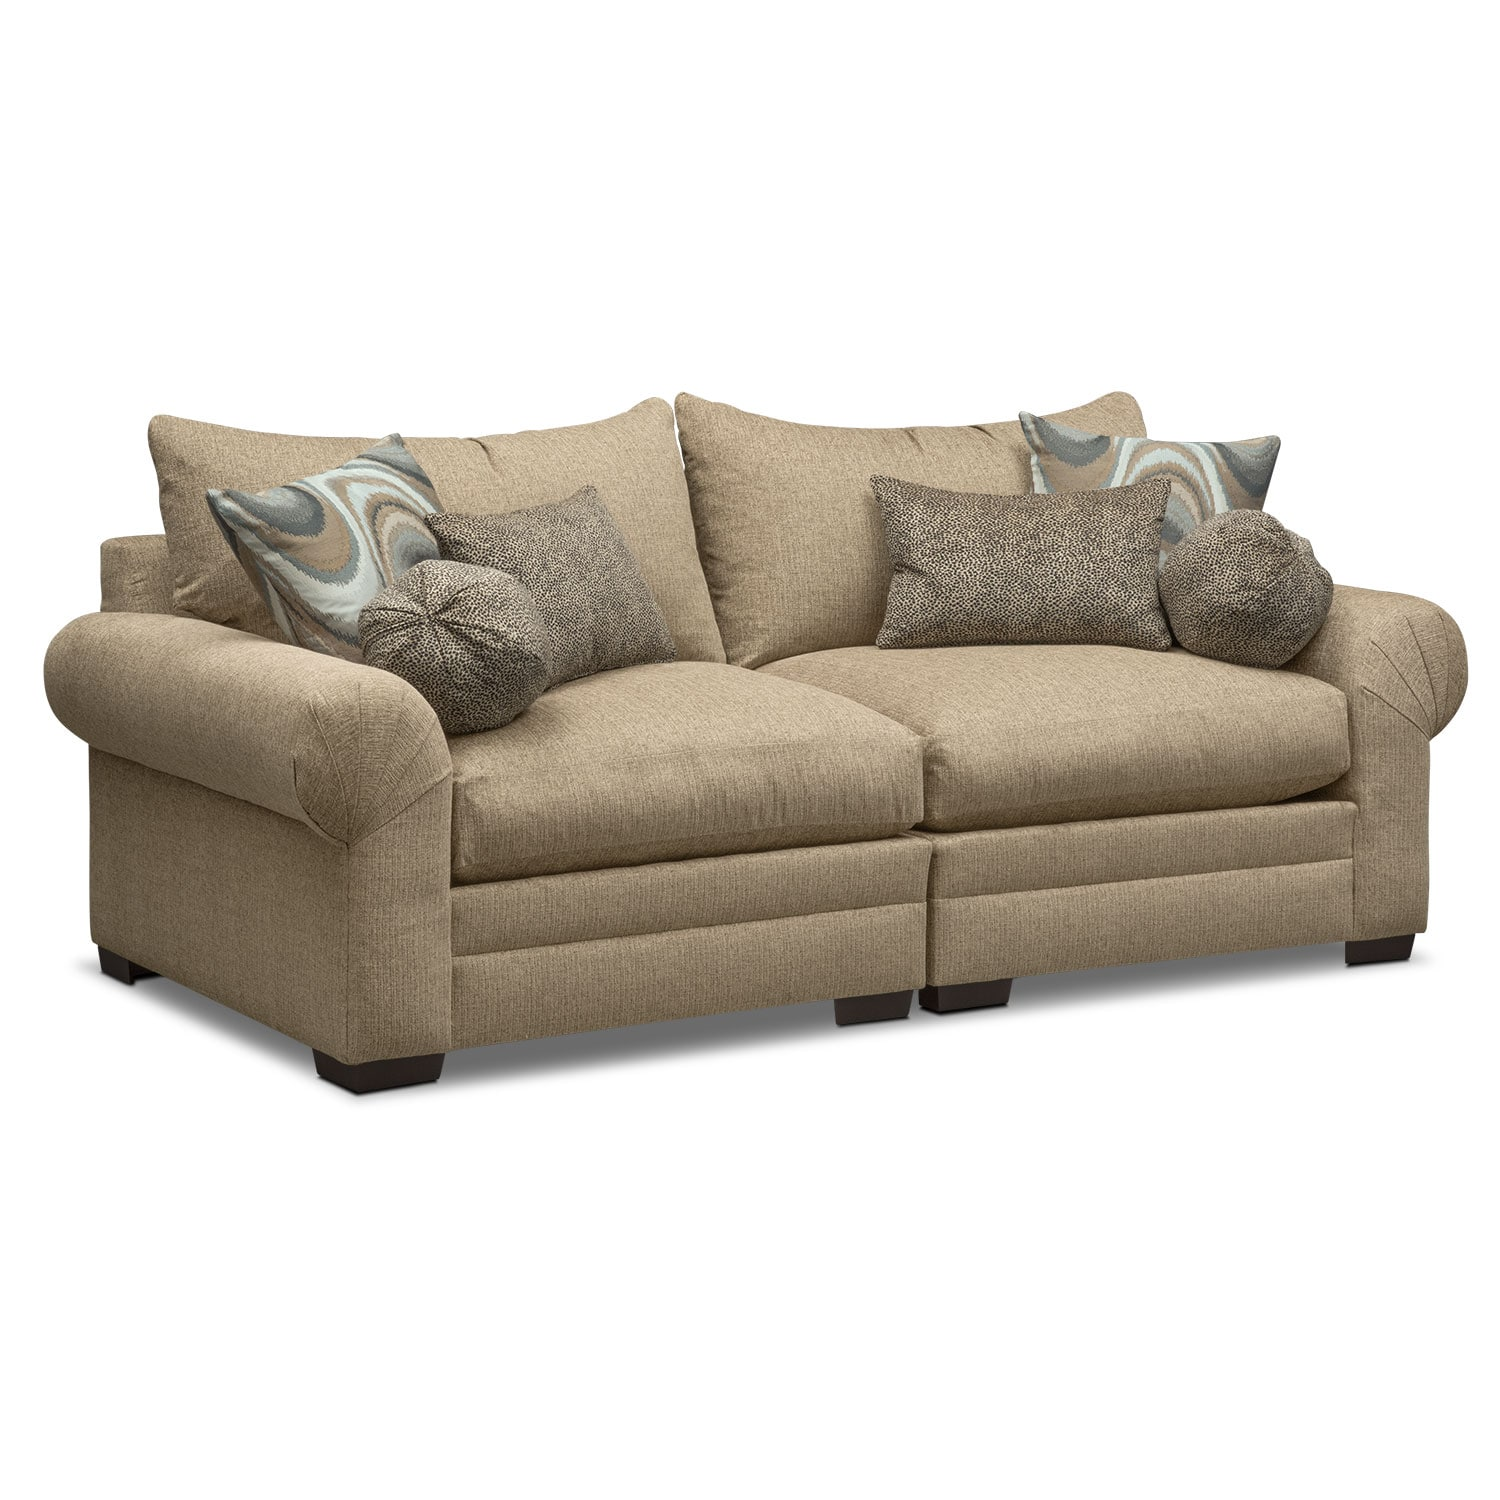 Living Room Furniture - Wilshire Sofa - Taupe